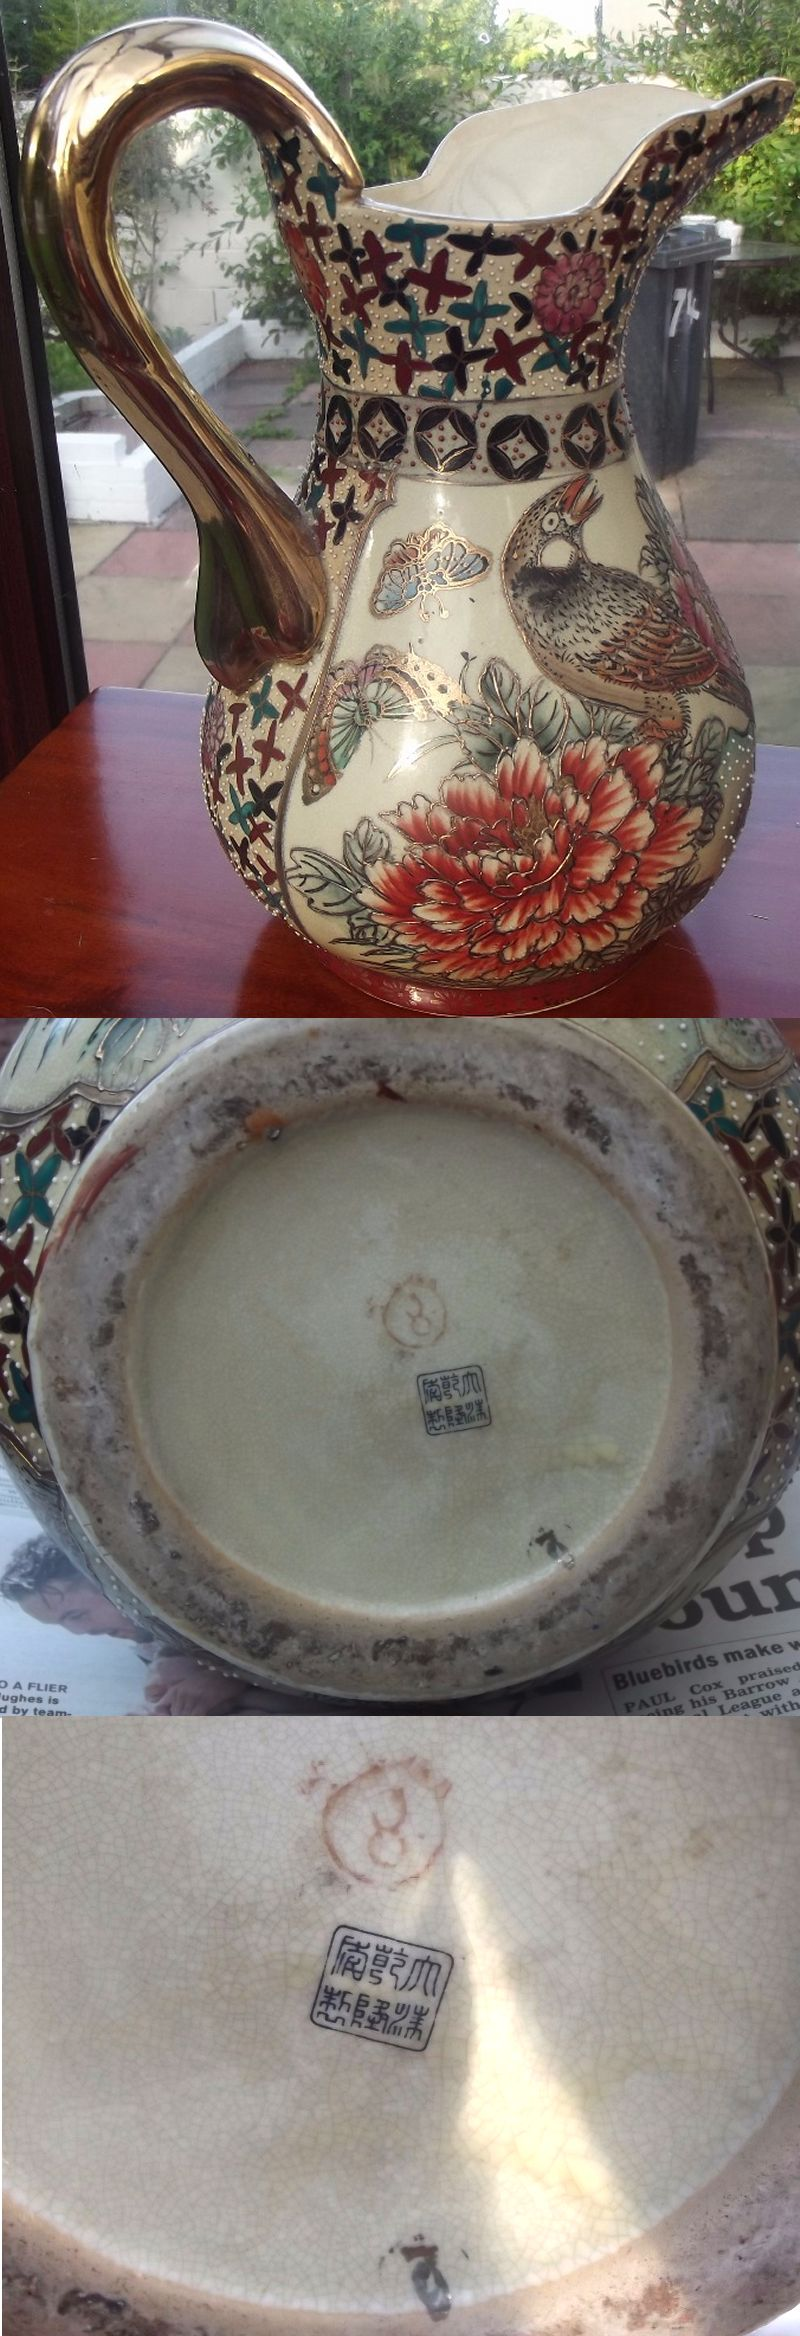 Marks on chinese porcelain porcelain marks on macau macau da qing qianlong nian zhi great qing qianlong period made decorated in macau style with raised enamels in moriage style imitating japanese kyoto reviewsmspy